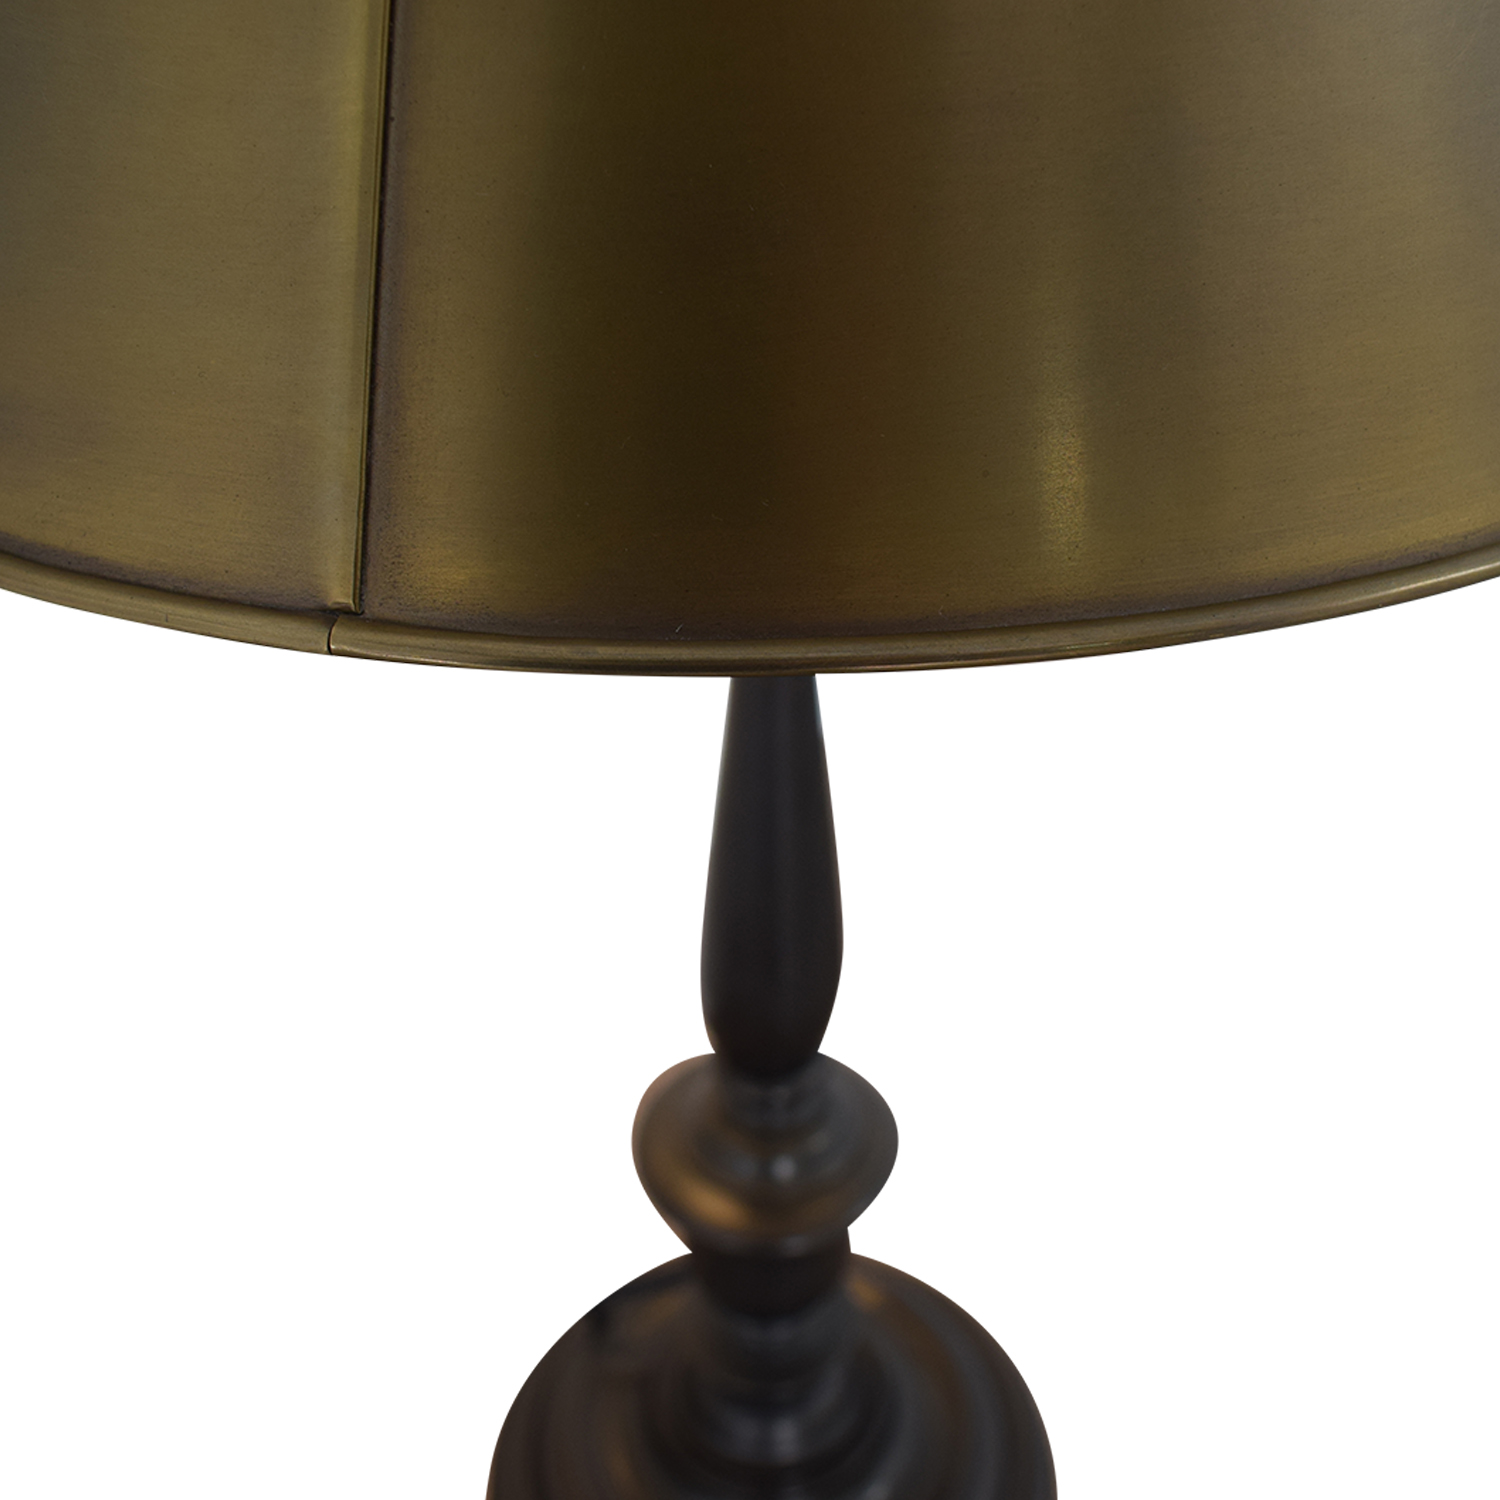 Visual Comfort Visual Comfort New York Public Library Table Lamp in Bronze with Antique Brass Shade brass